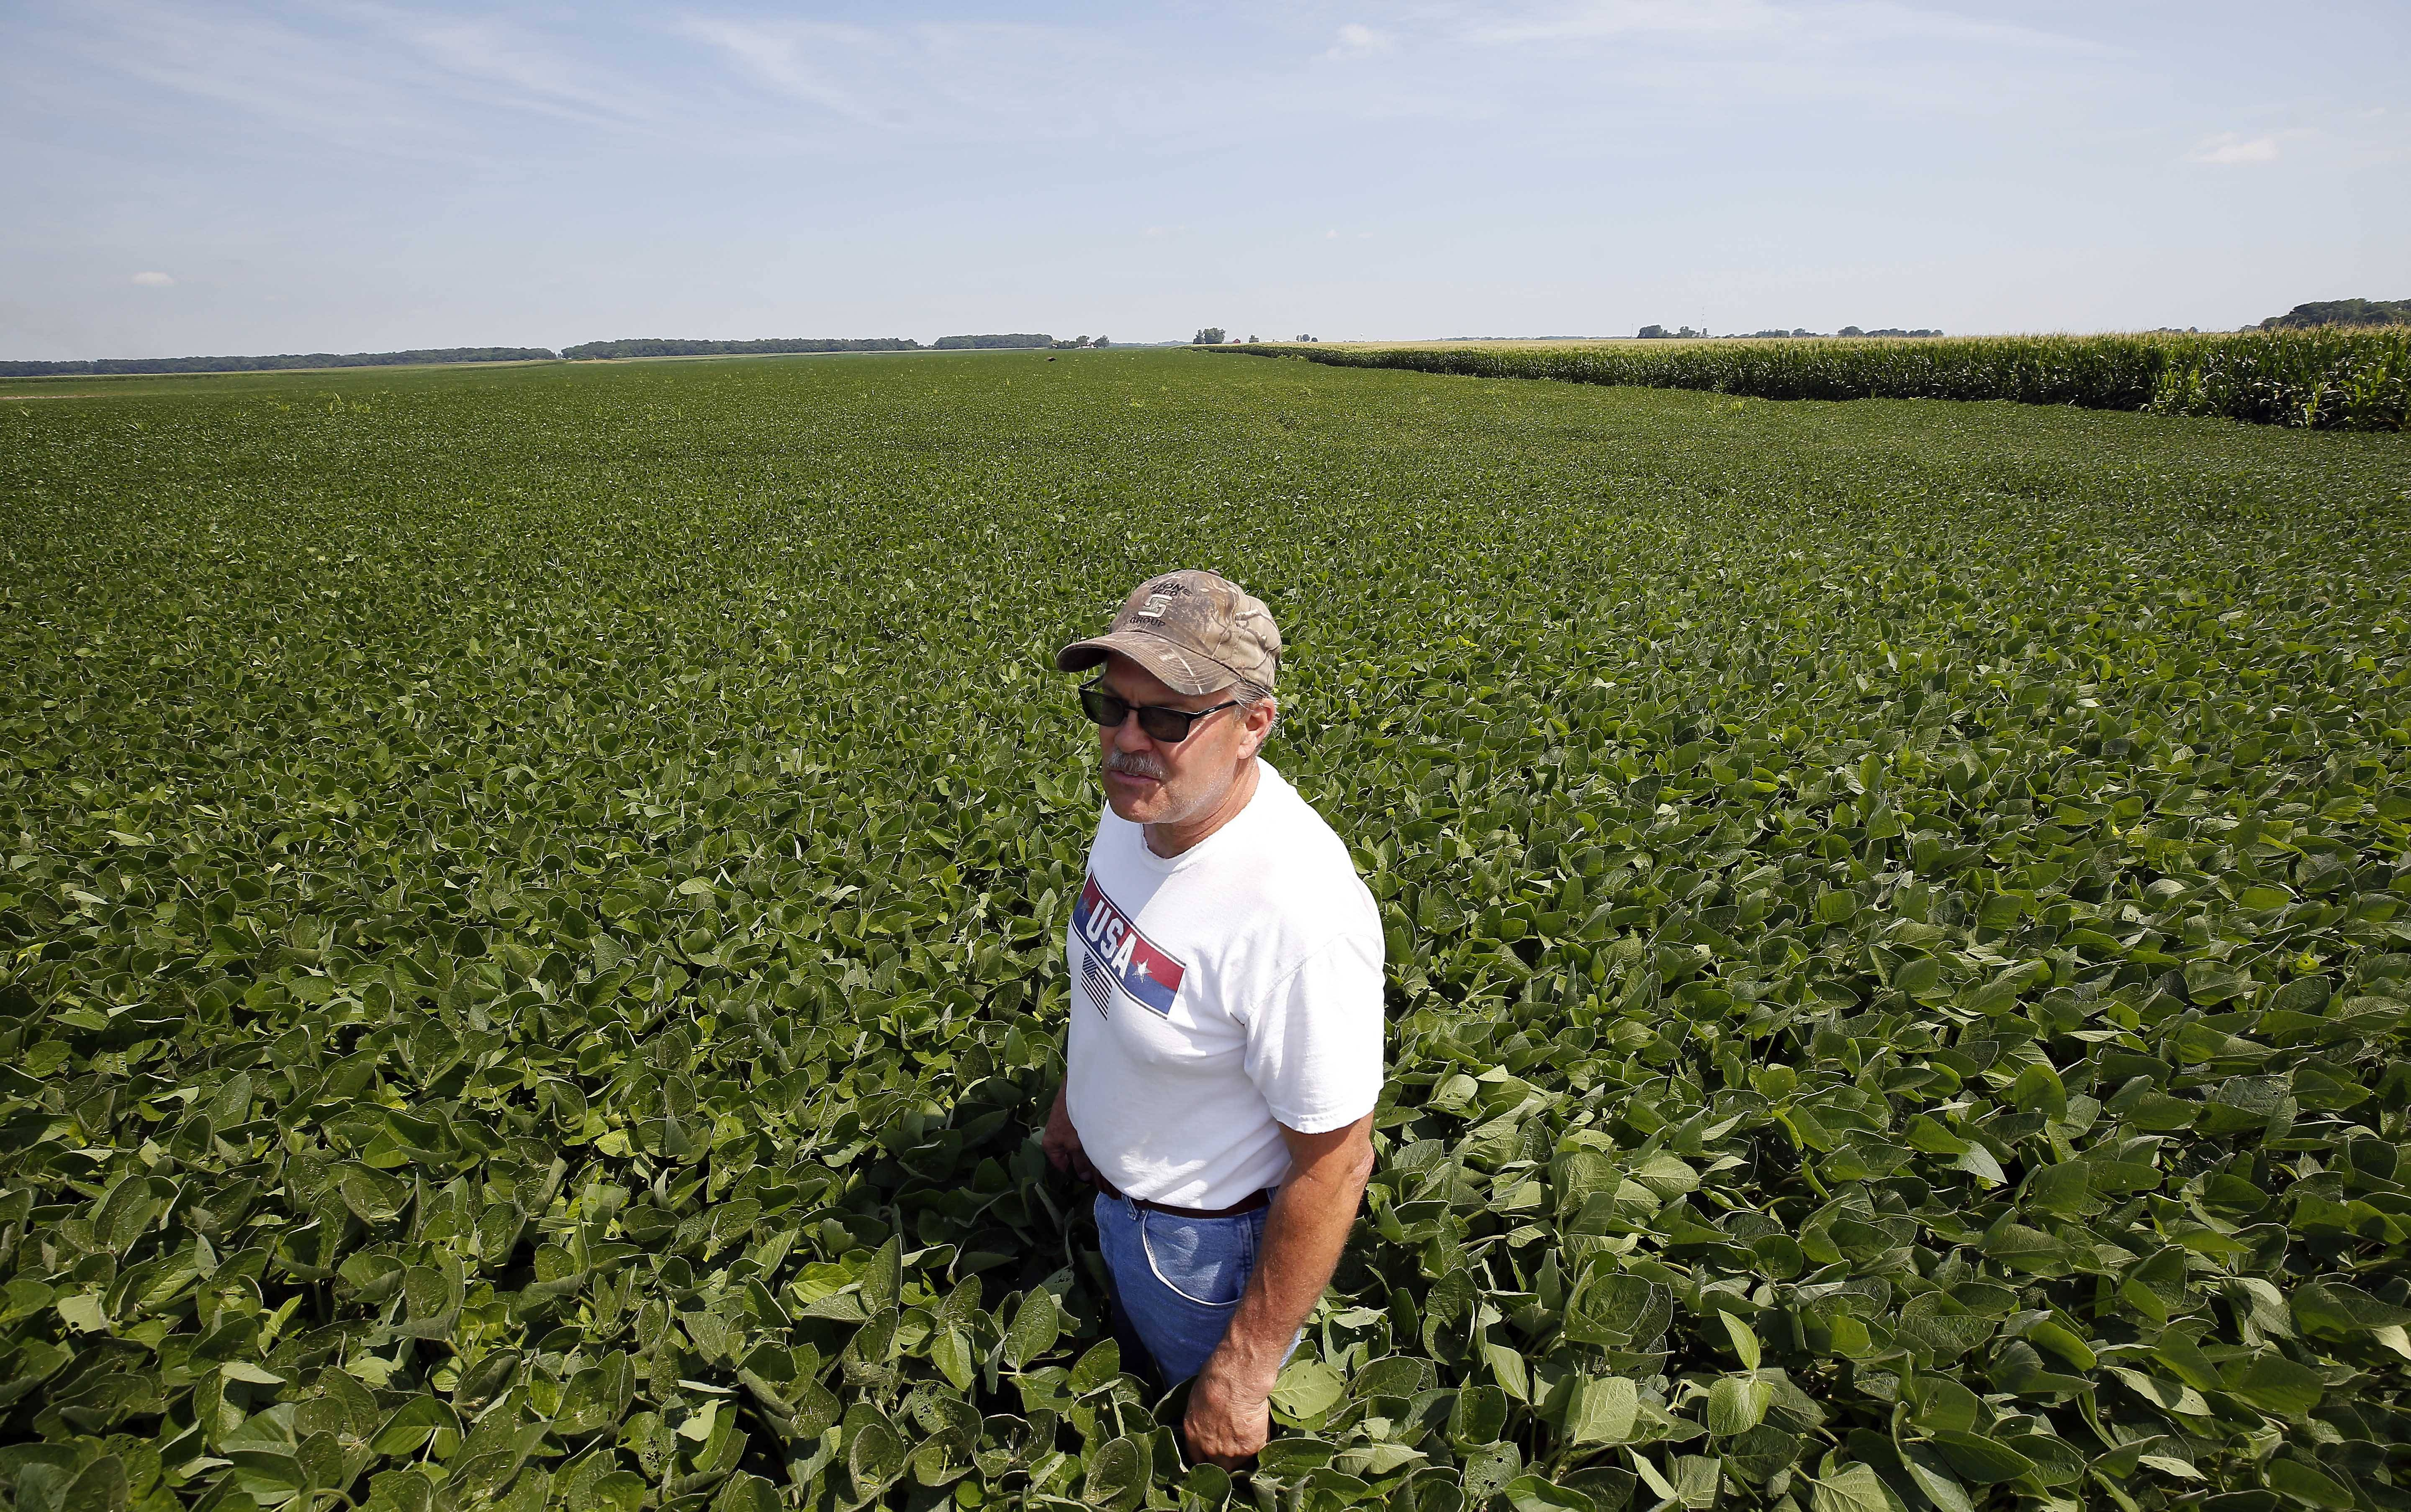 Joe White of Elburn, who farms about 500 acres of soybeans, has mixed feelings about how the soybean tariffs and trade talks will affect the suburbs. Hear more from him at dailyherald.com/video.